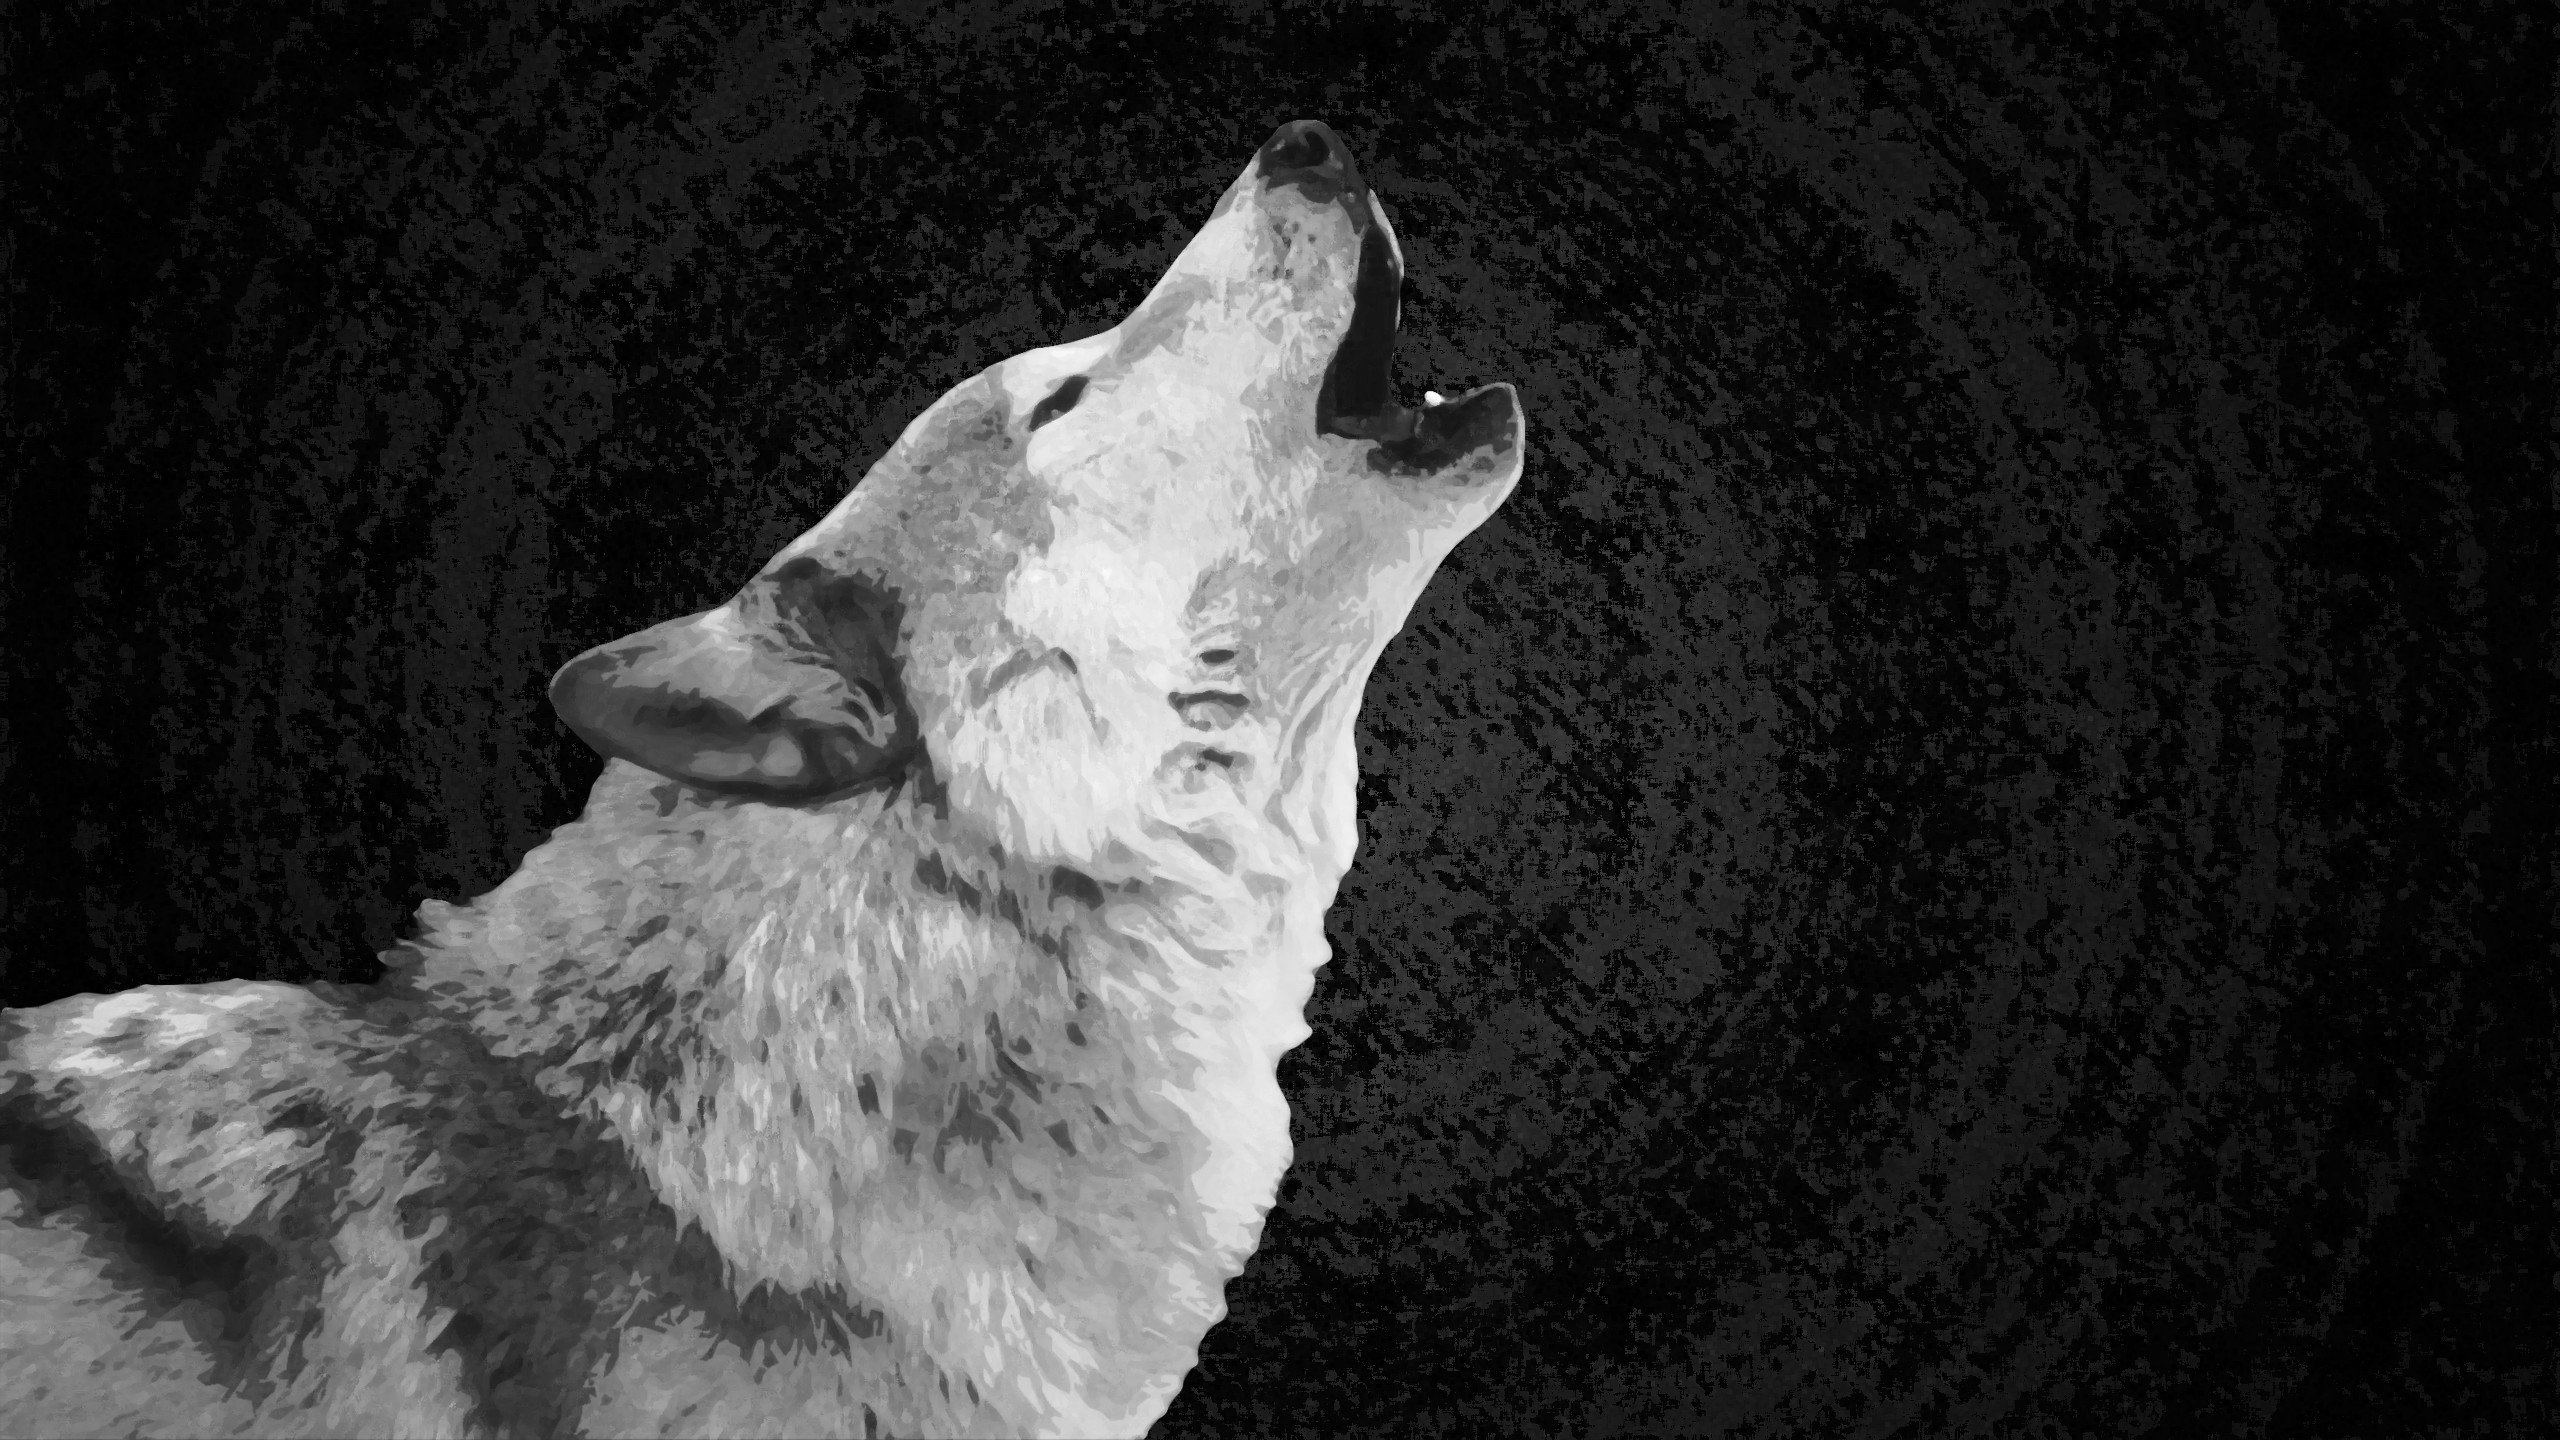 3d Hd Wolf Wallpaper Black And White Wolf 369438 Hd Wallpaper Backgrounds Download